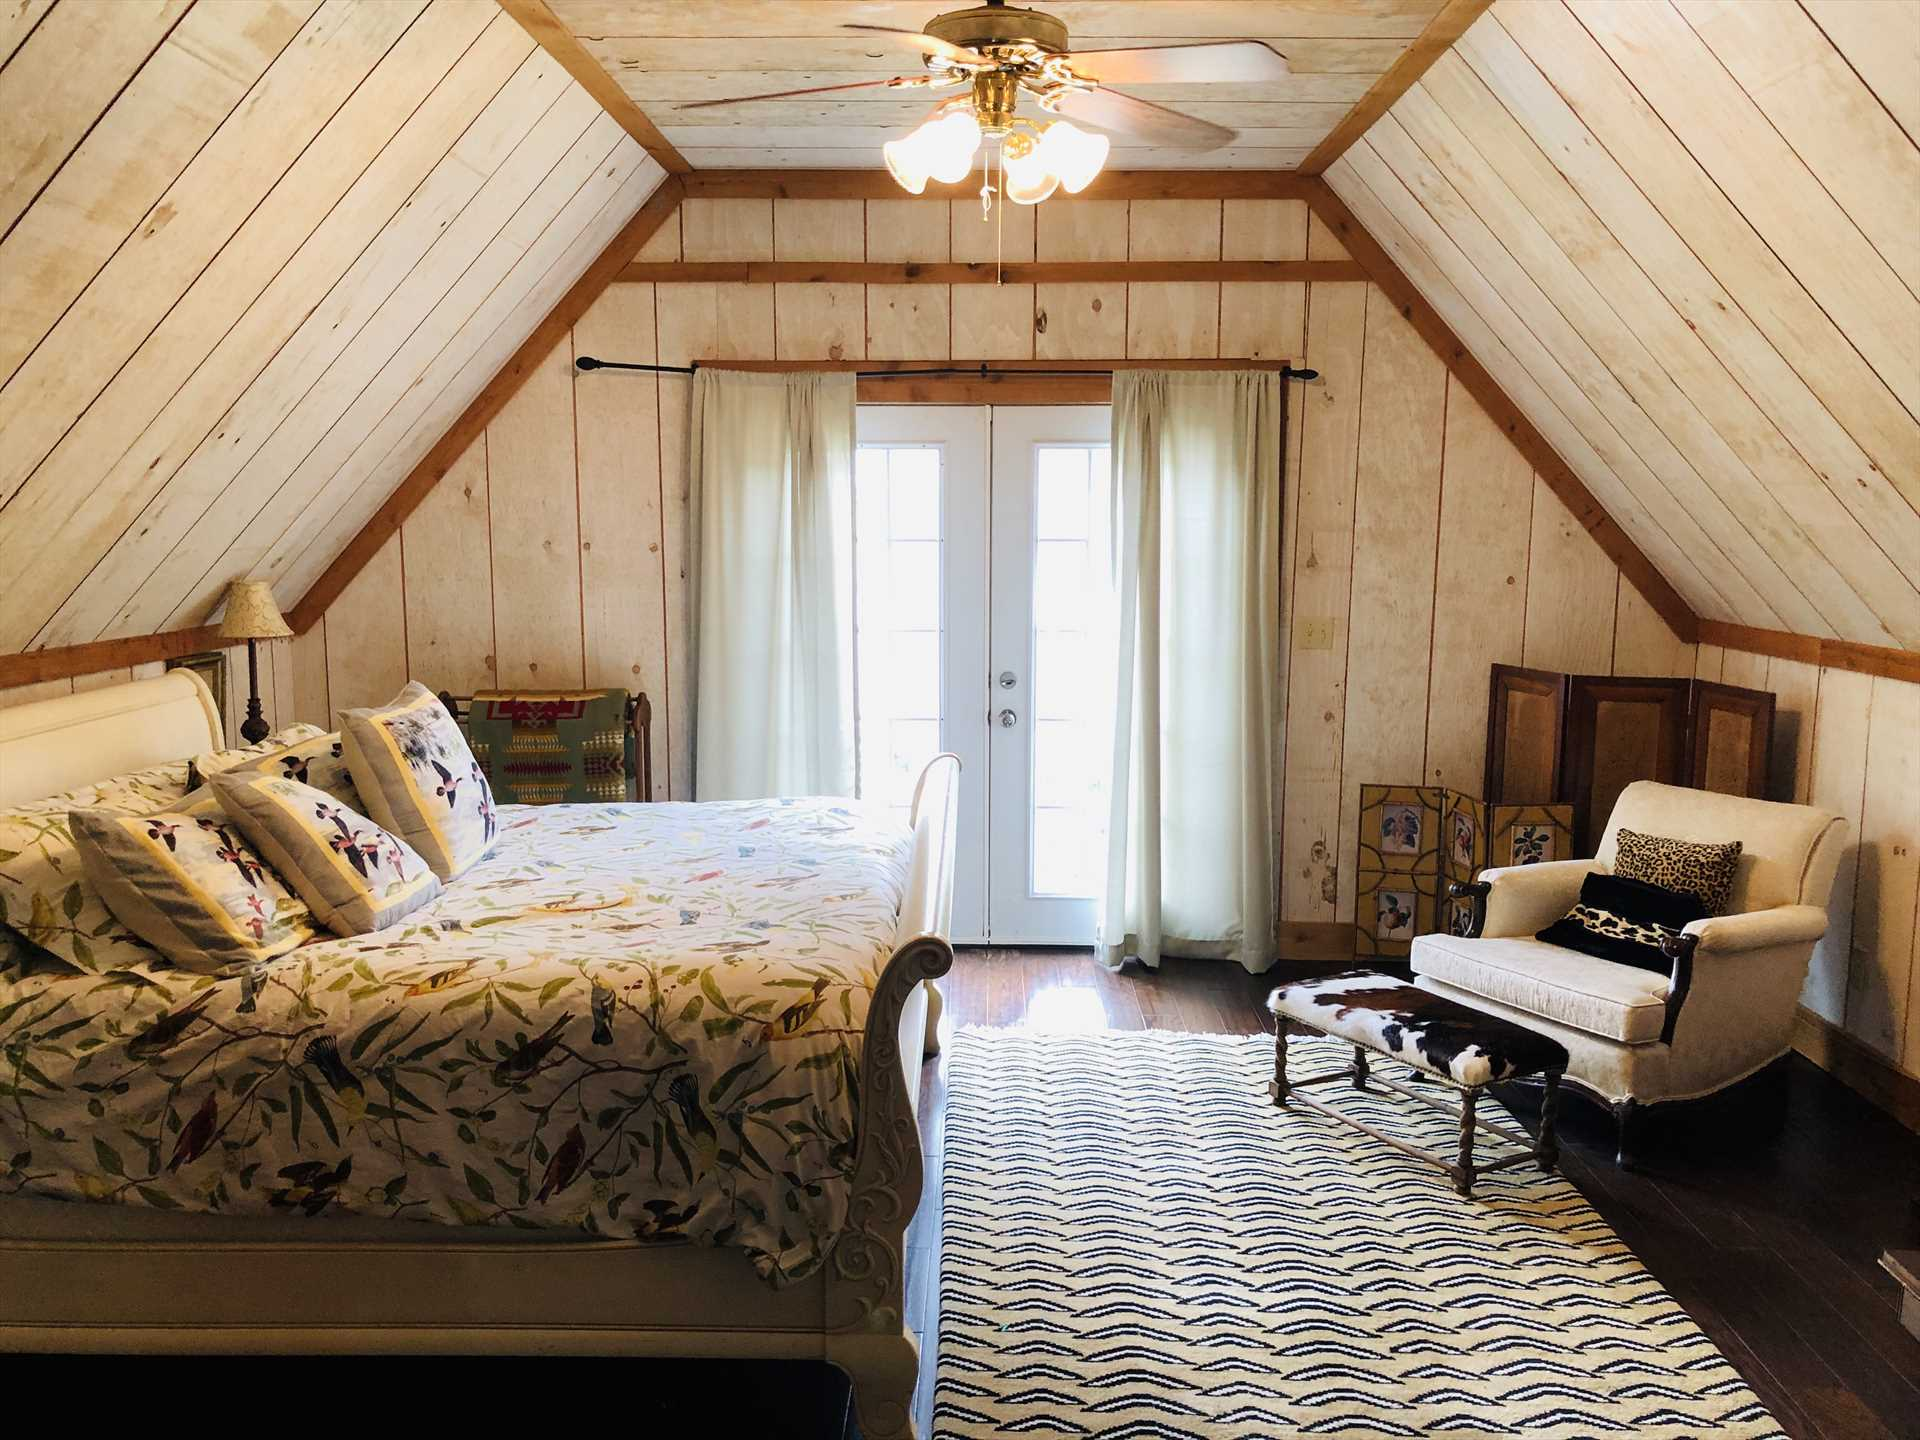 A great big king-sized bed is the perfect place for pillow talk and restful slumber in your Hill Country haven.